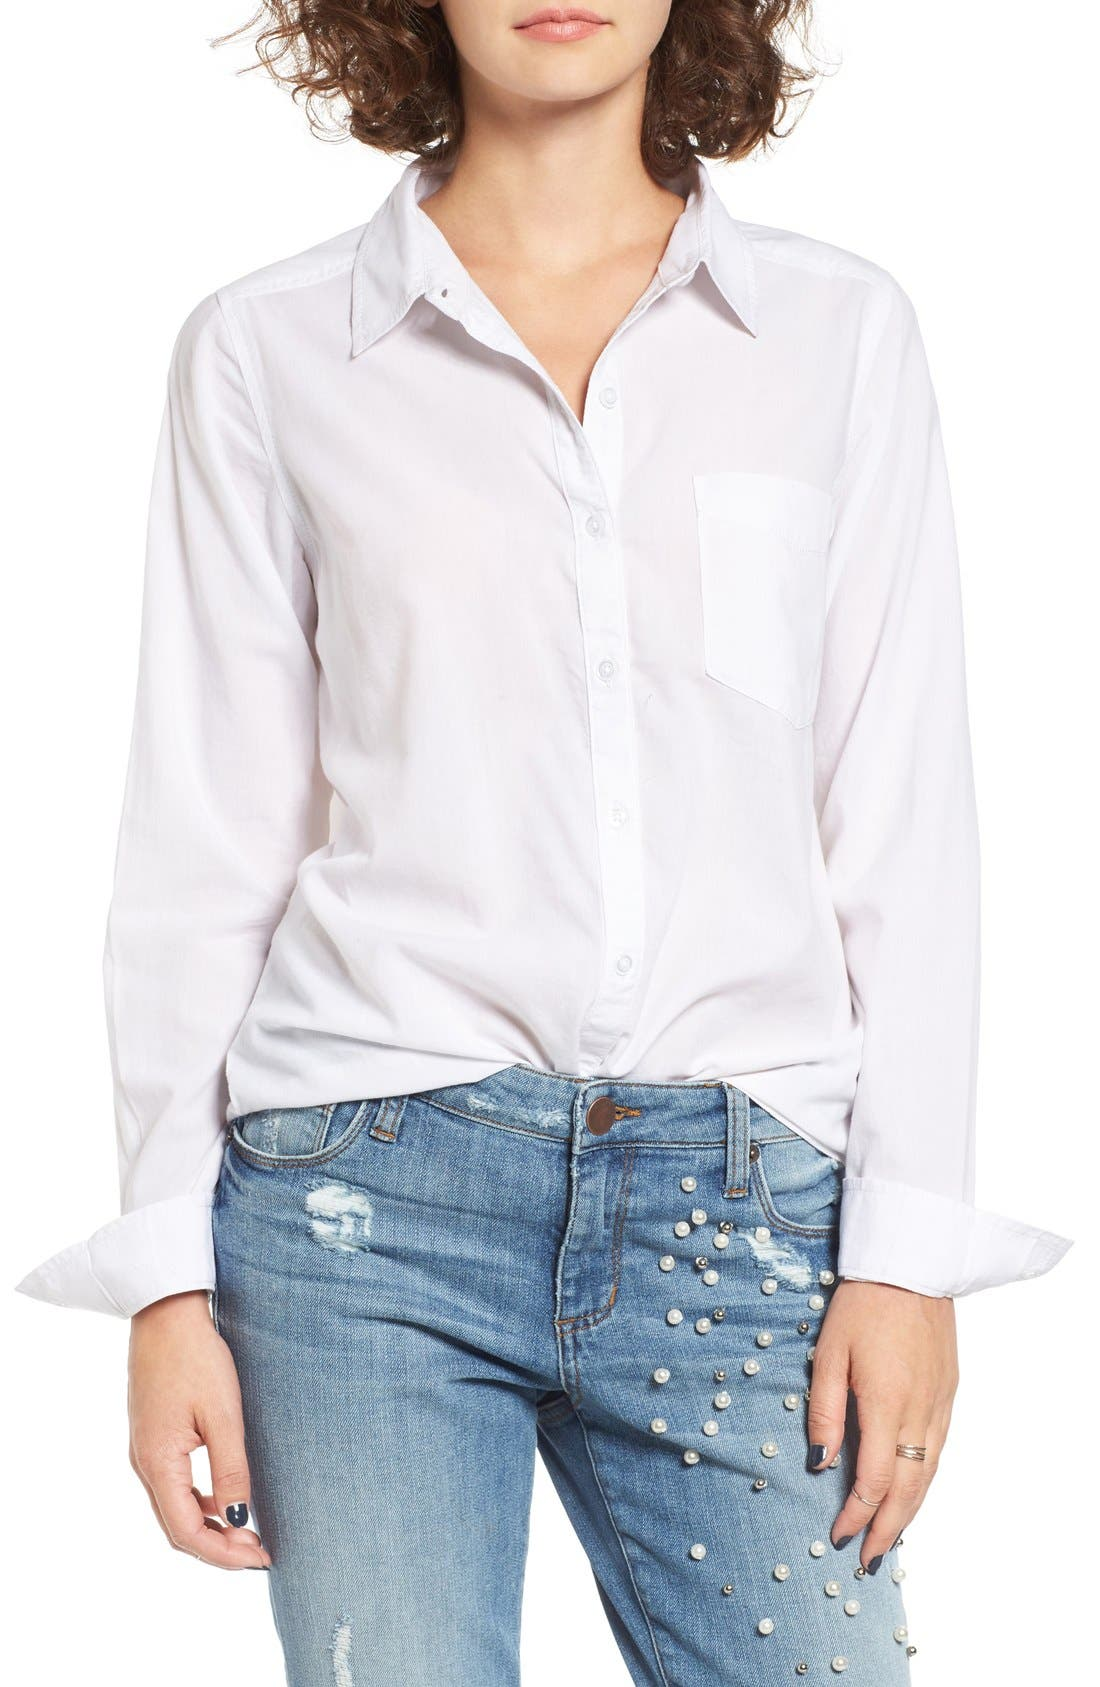 Cotton Blend Button Down Shirt,                             Main thumbnail 1, color,                             White